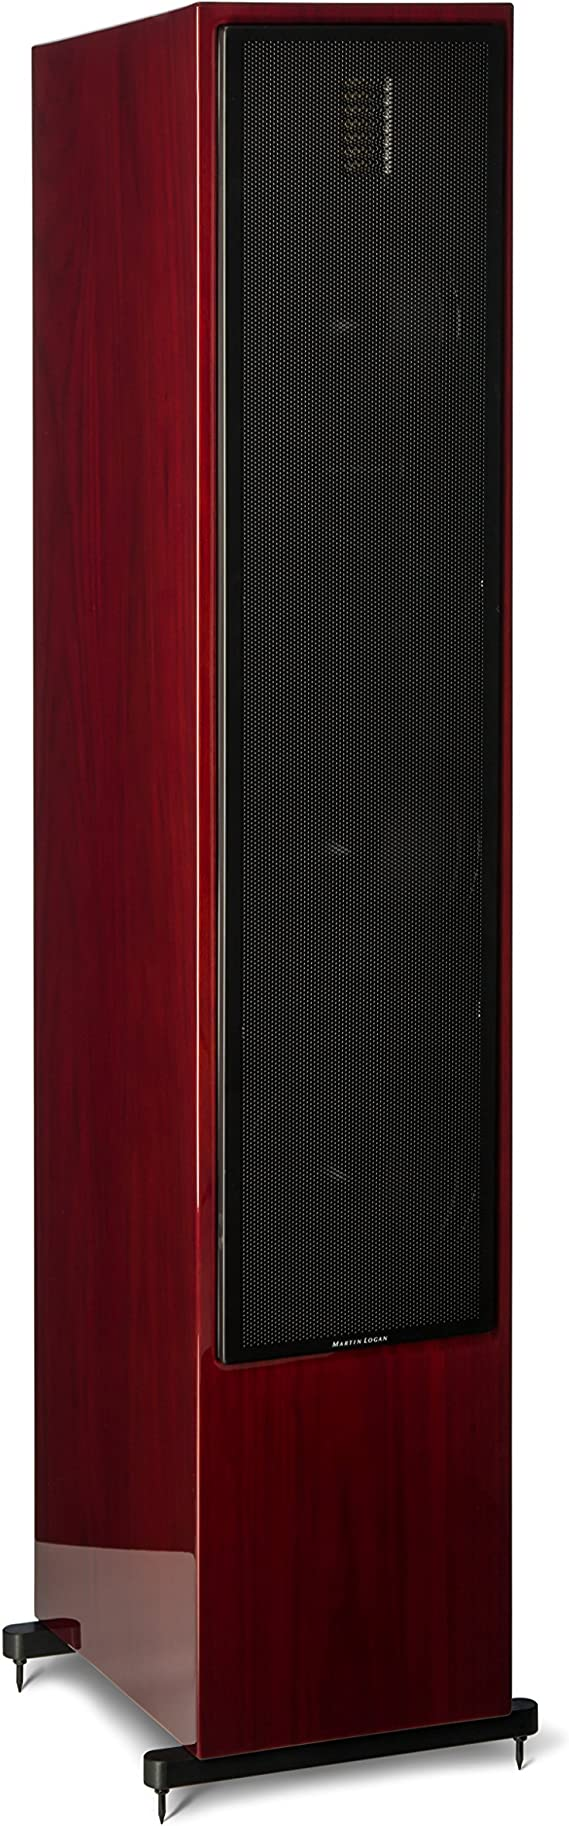 MartinLogan Motion 60XT Floor Standing Speaker - Gloss Black Cherrywood - Each